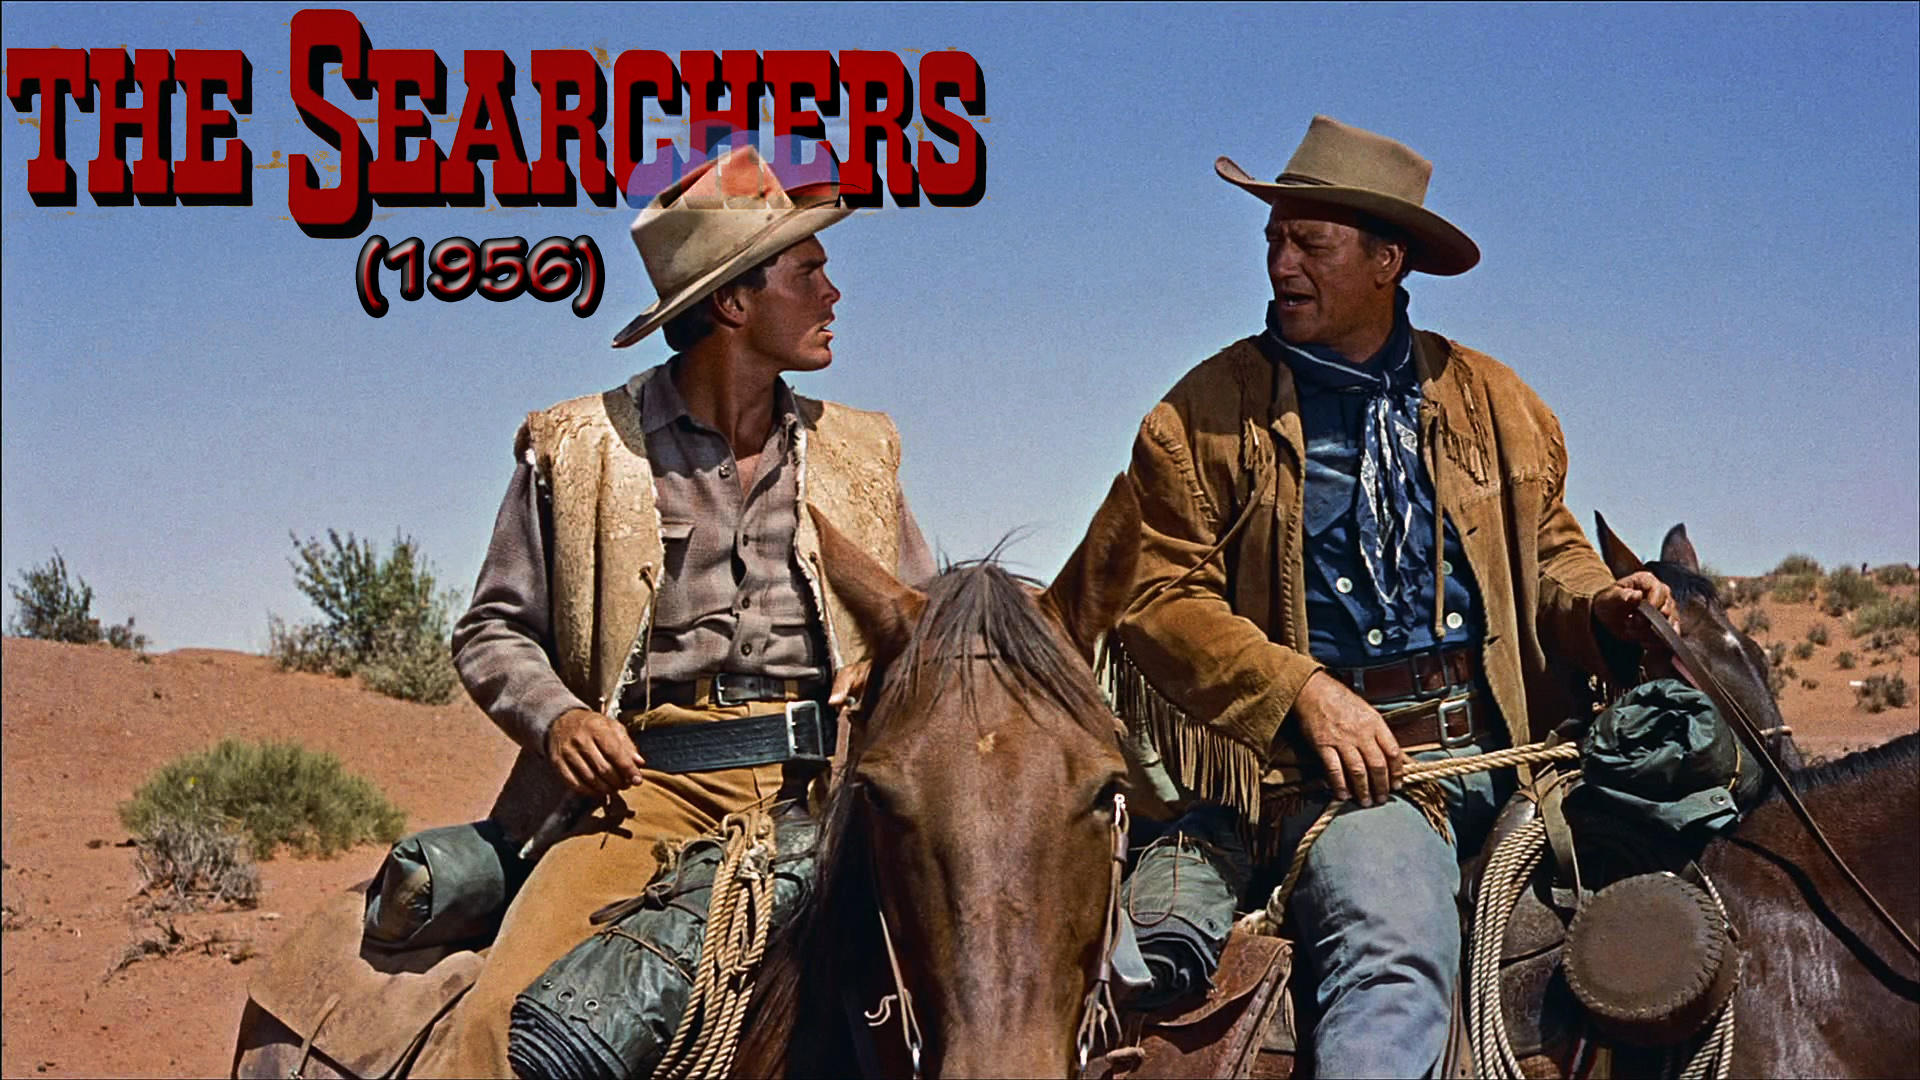 art of film western review If john ford is the greatest western director, the searchers is couldn't be art that prevent the searchers from being the most racist film i've.